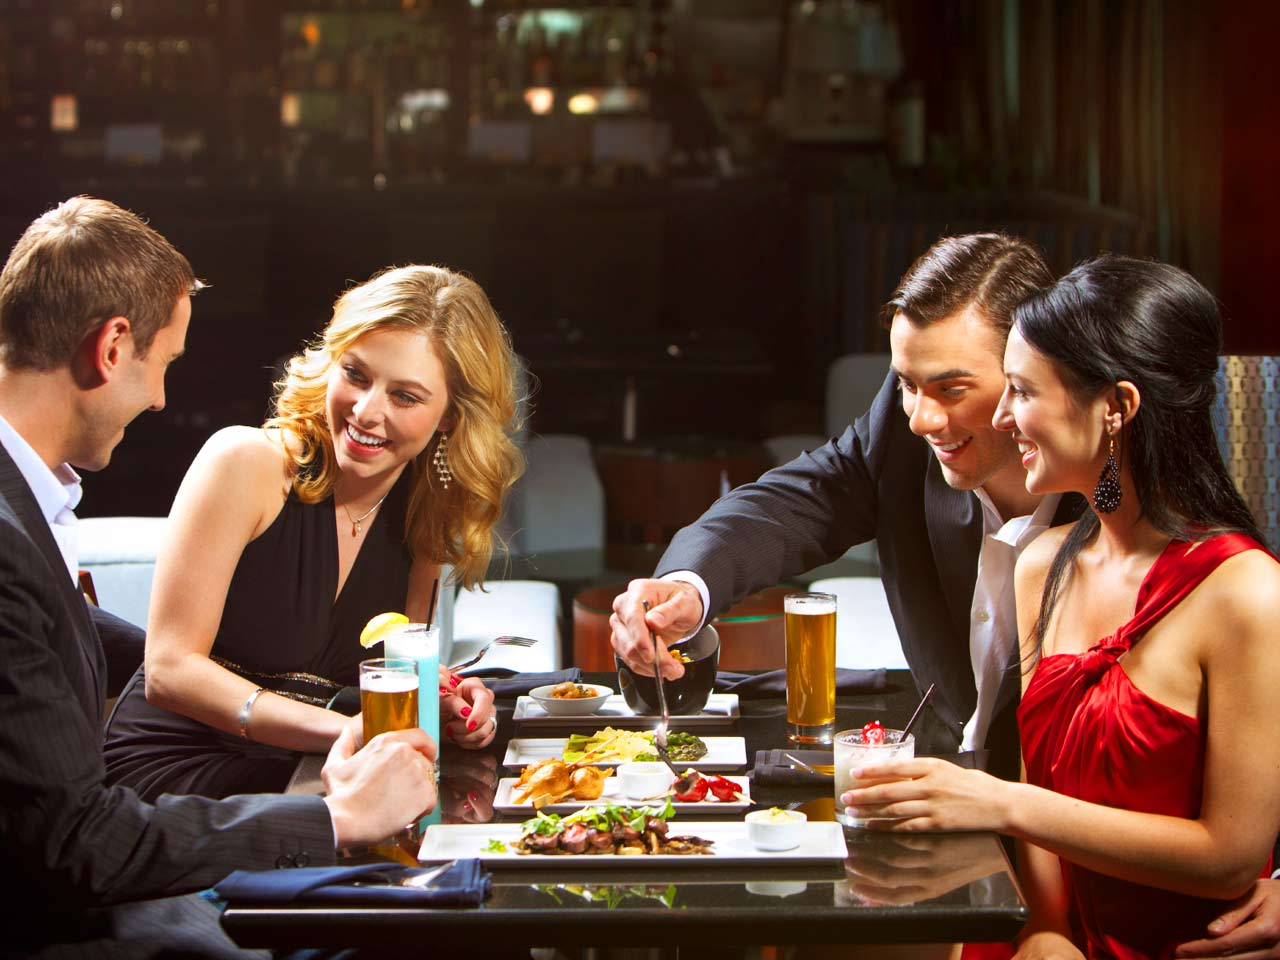 Chicago Suburbs Most Romantic Restaurants